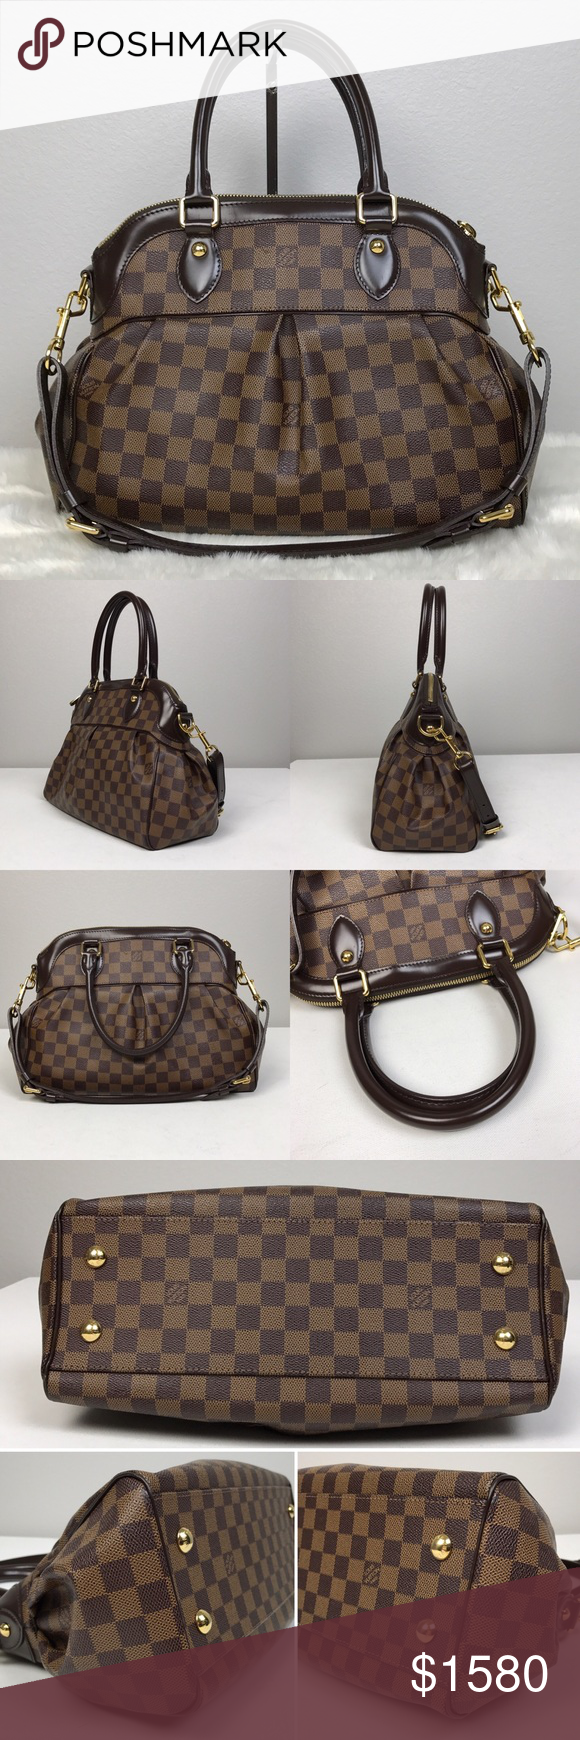 """Louis Vuitton Trevi PM Damier Ebene Satchel Louis Vuitton Trevi PM Damier Ebene Satchel. Dark brown leather trim, gold hardware, double rolled leather shoulder straps, detachable adjustable leather longer shoulder strap. Gold feet on the bottom, top zip closure, red alcantara fabric lining, 2 Interior slip pockets. Made in France. In great condition. Some scuff marks on the exterior. Minor wears at the corners. Clean lining. Dust bag included. Dimension (approximate): 13.4"""" x 5.9"""" x 9.4""""…"""